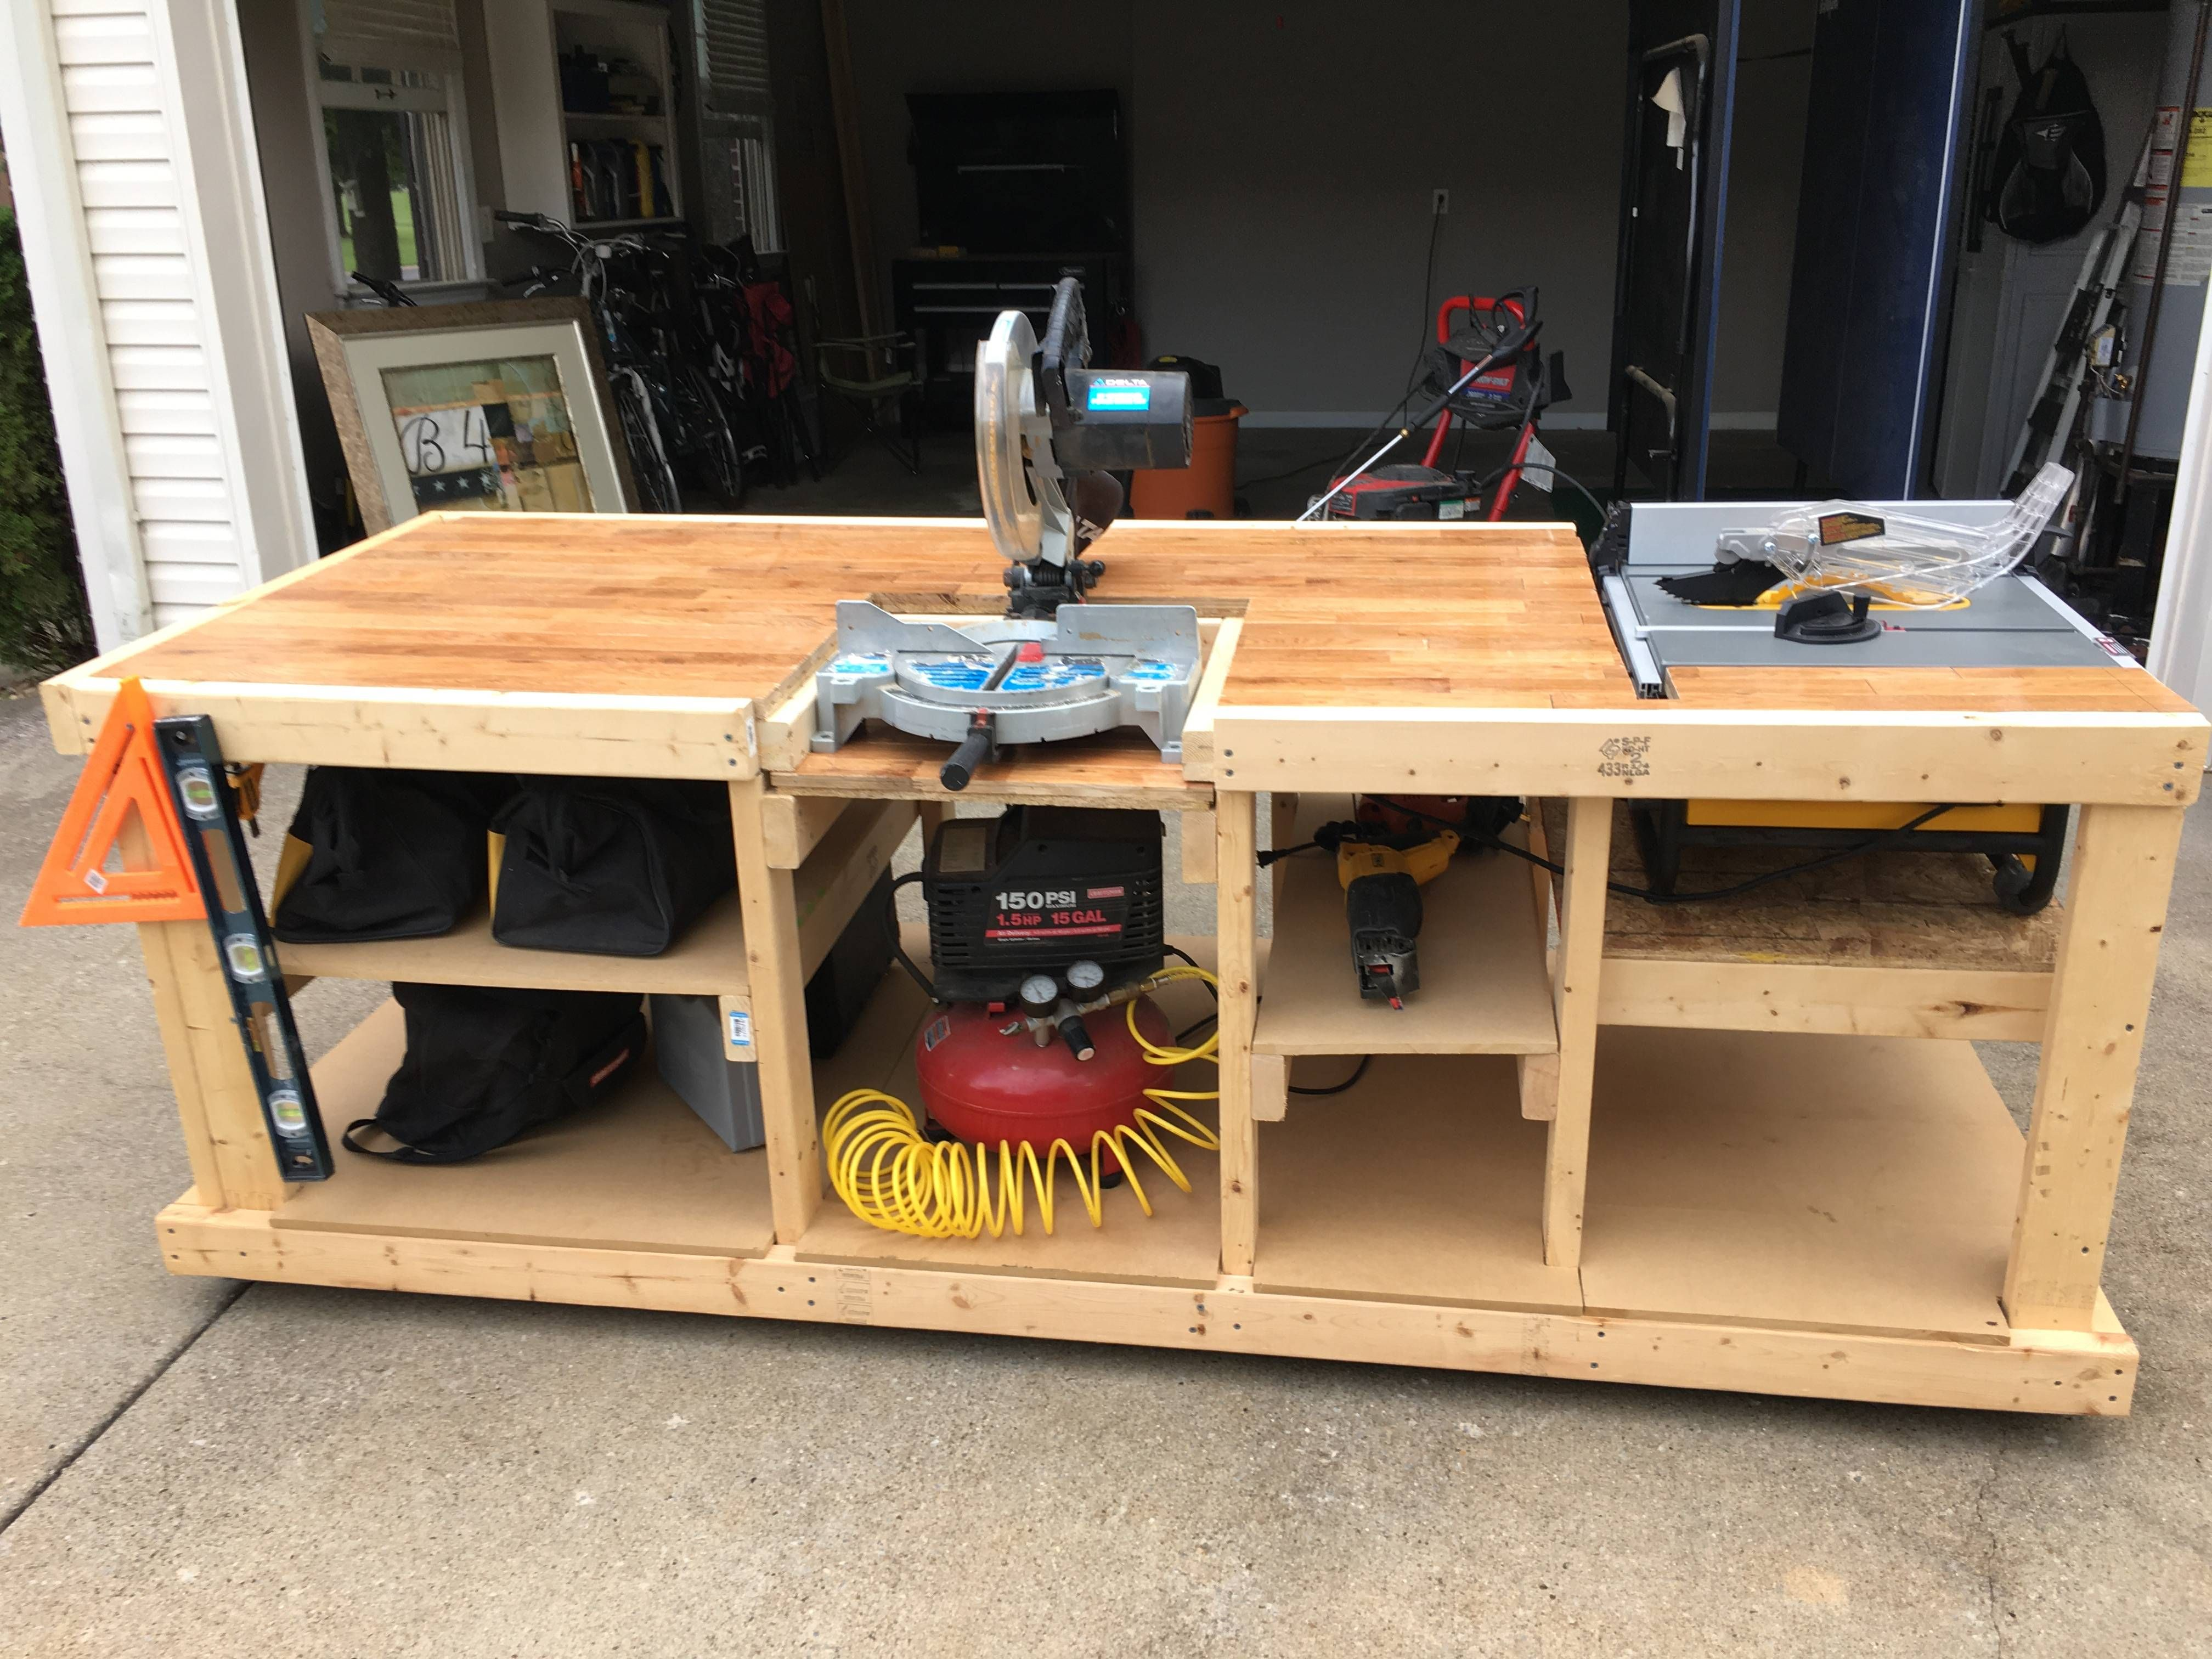 I built a mobile workbench